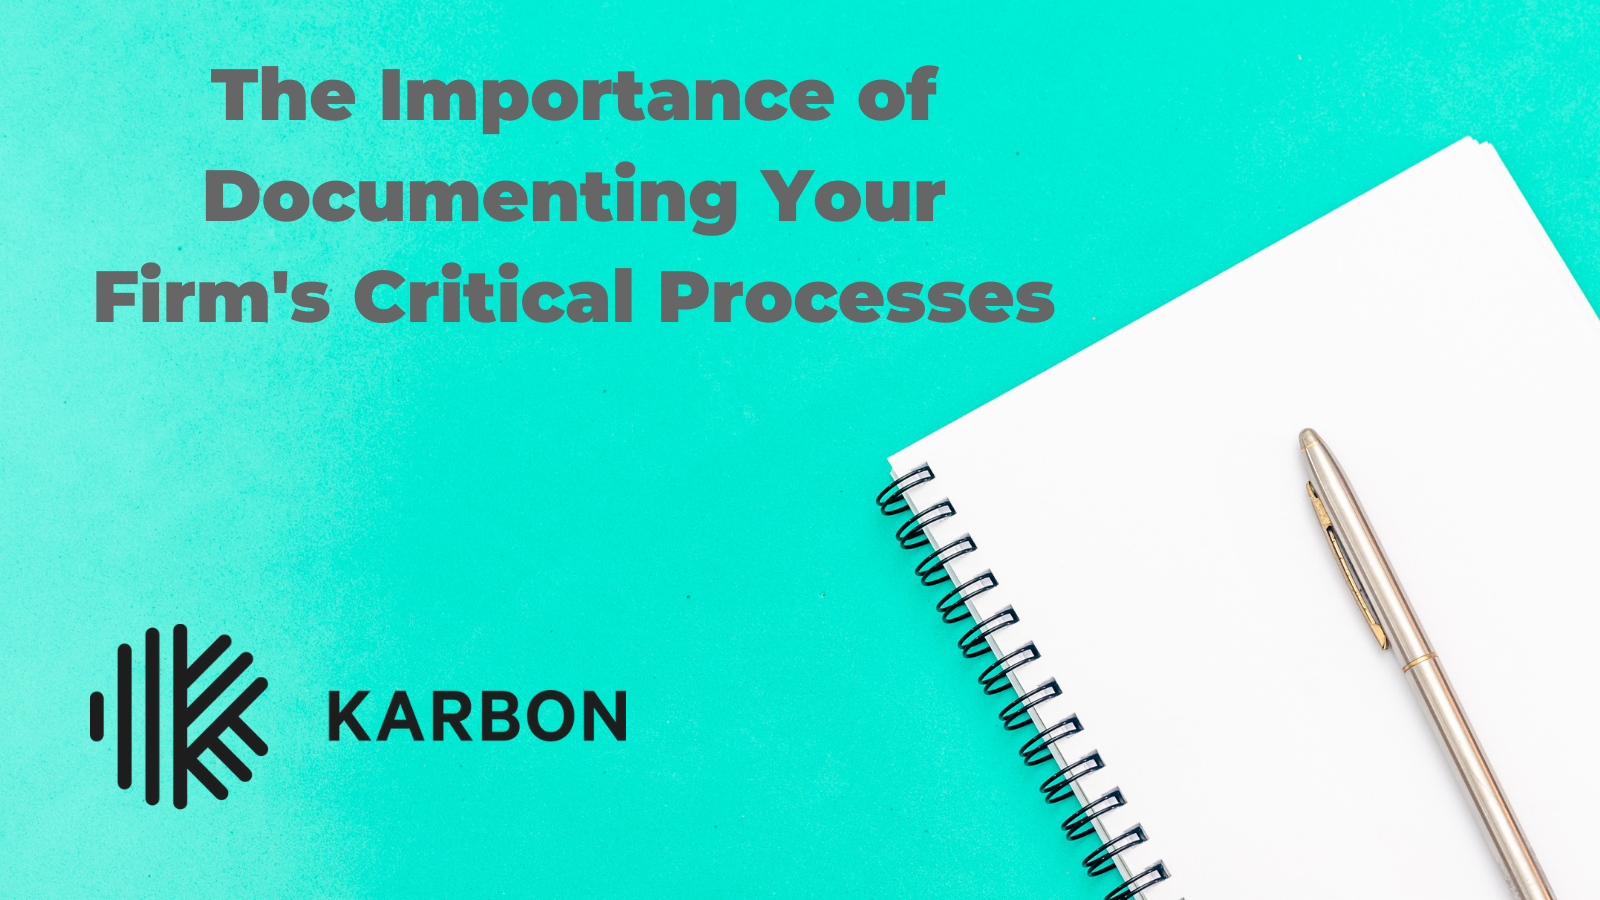 The Importance of Documenting Your Firm's Critical Processes